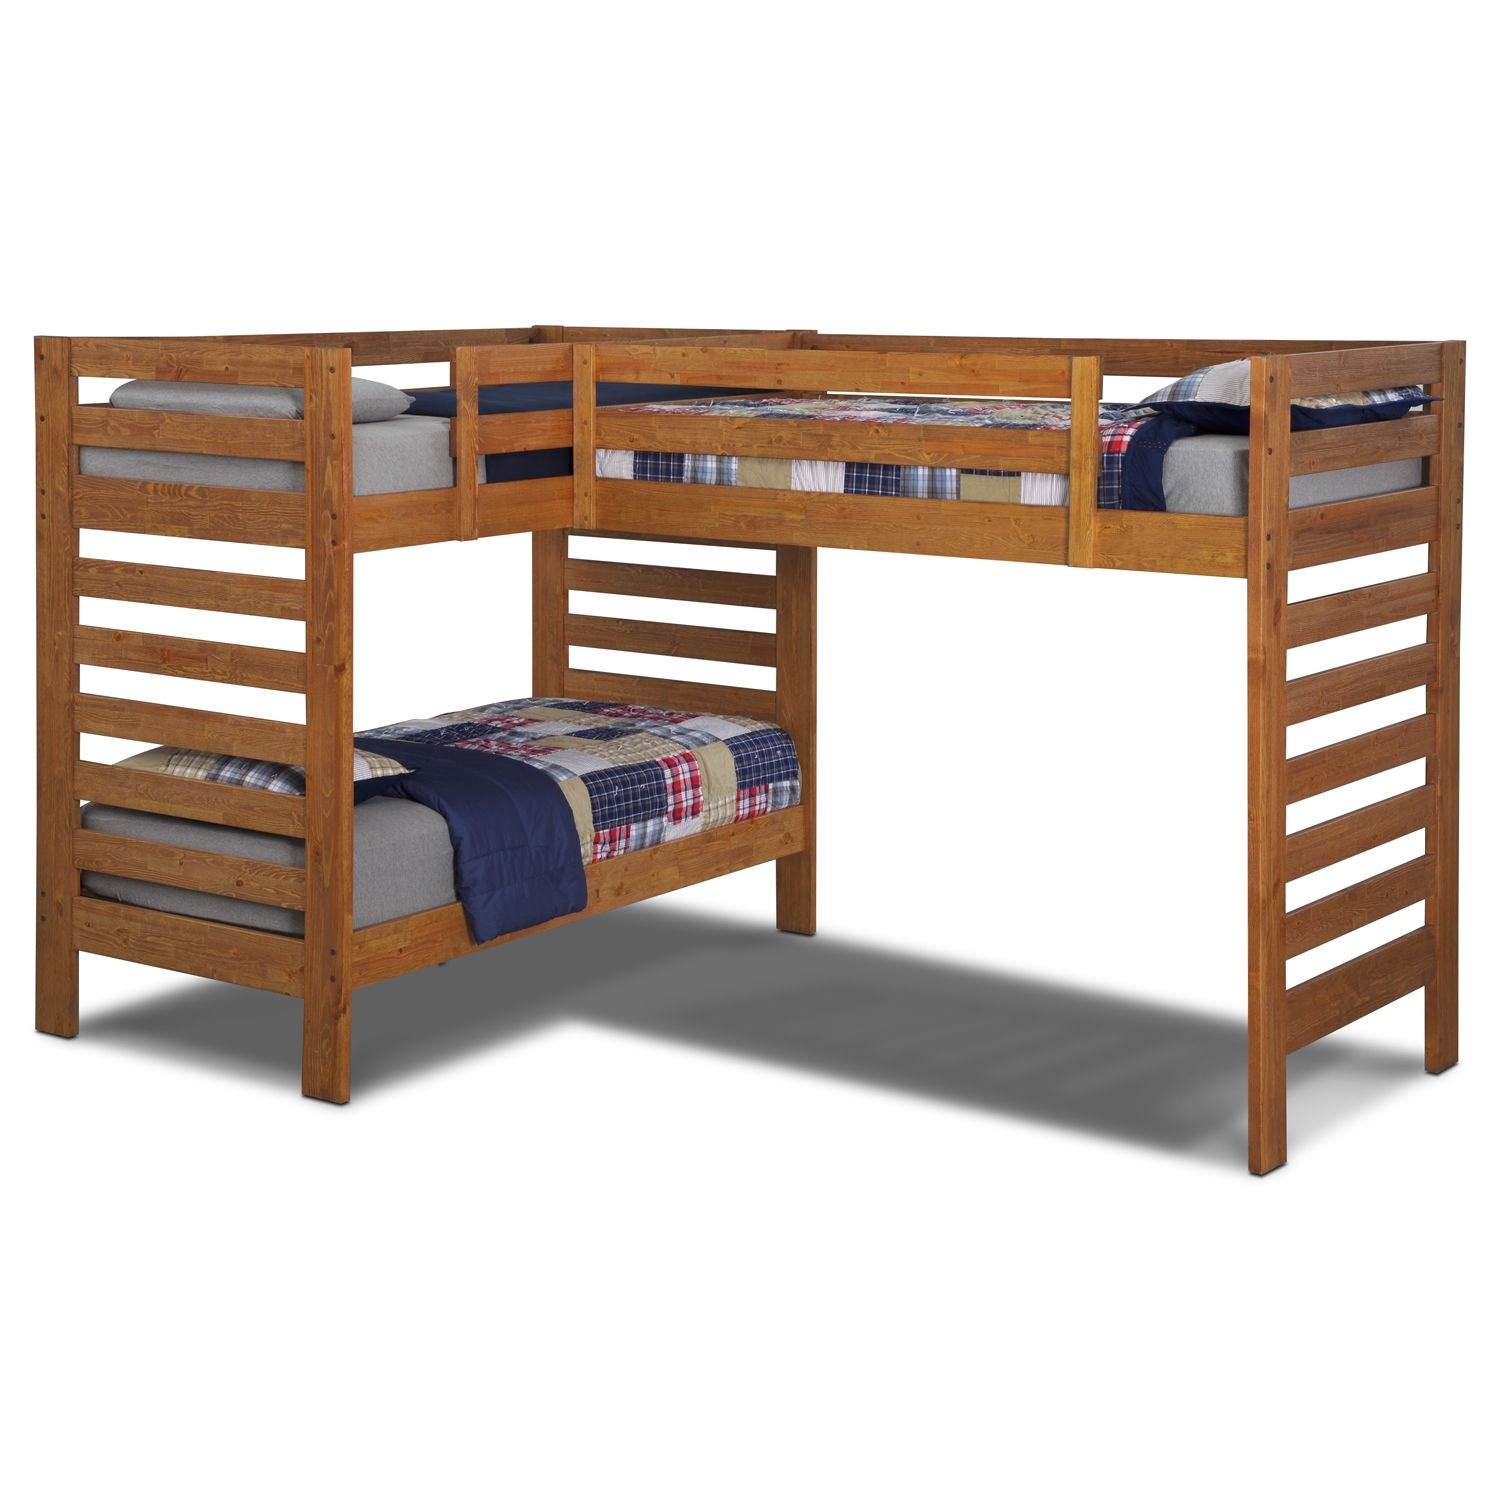 Creative L Shaped Bunk Beds For Comfortable Sleep L Shaped Bunk